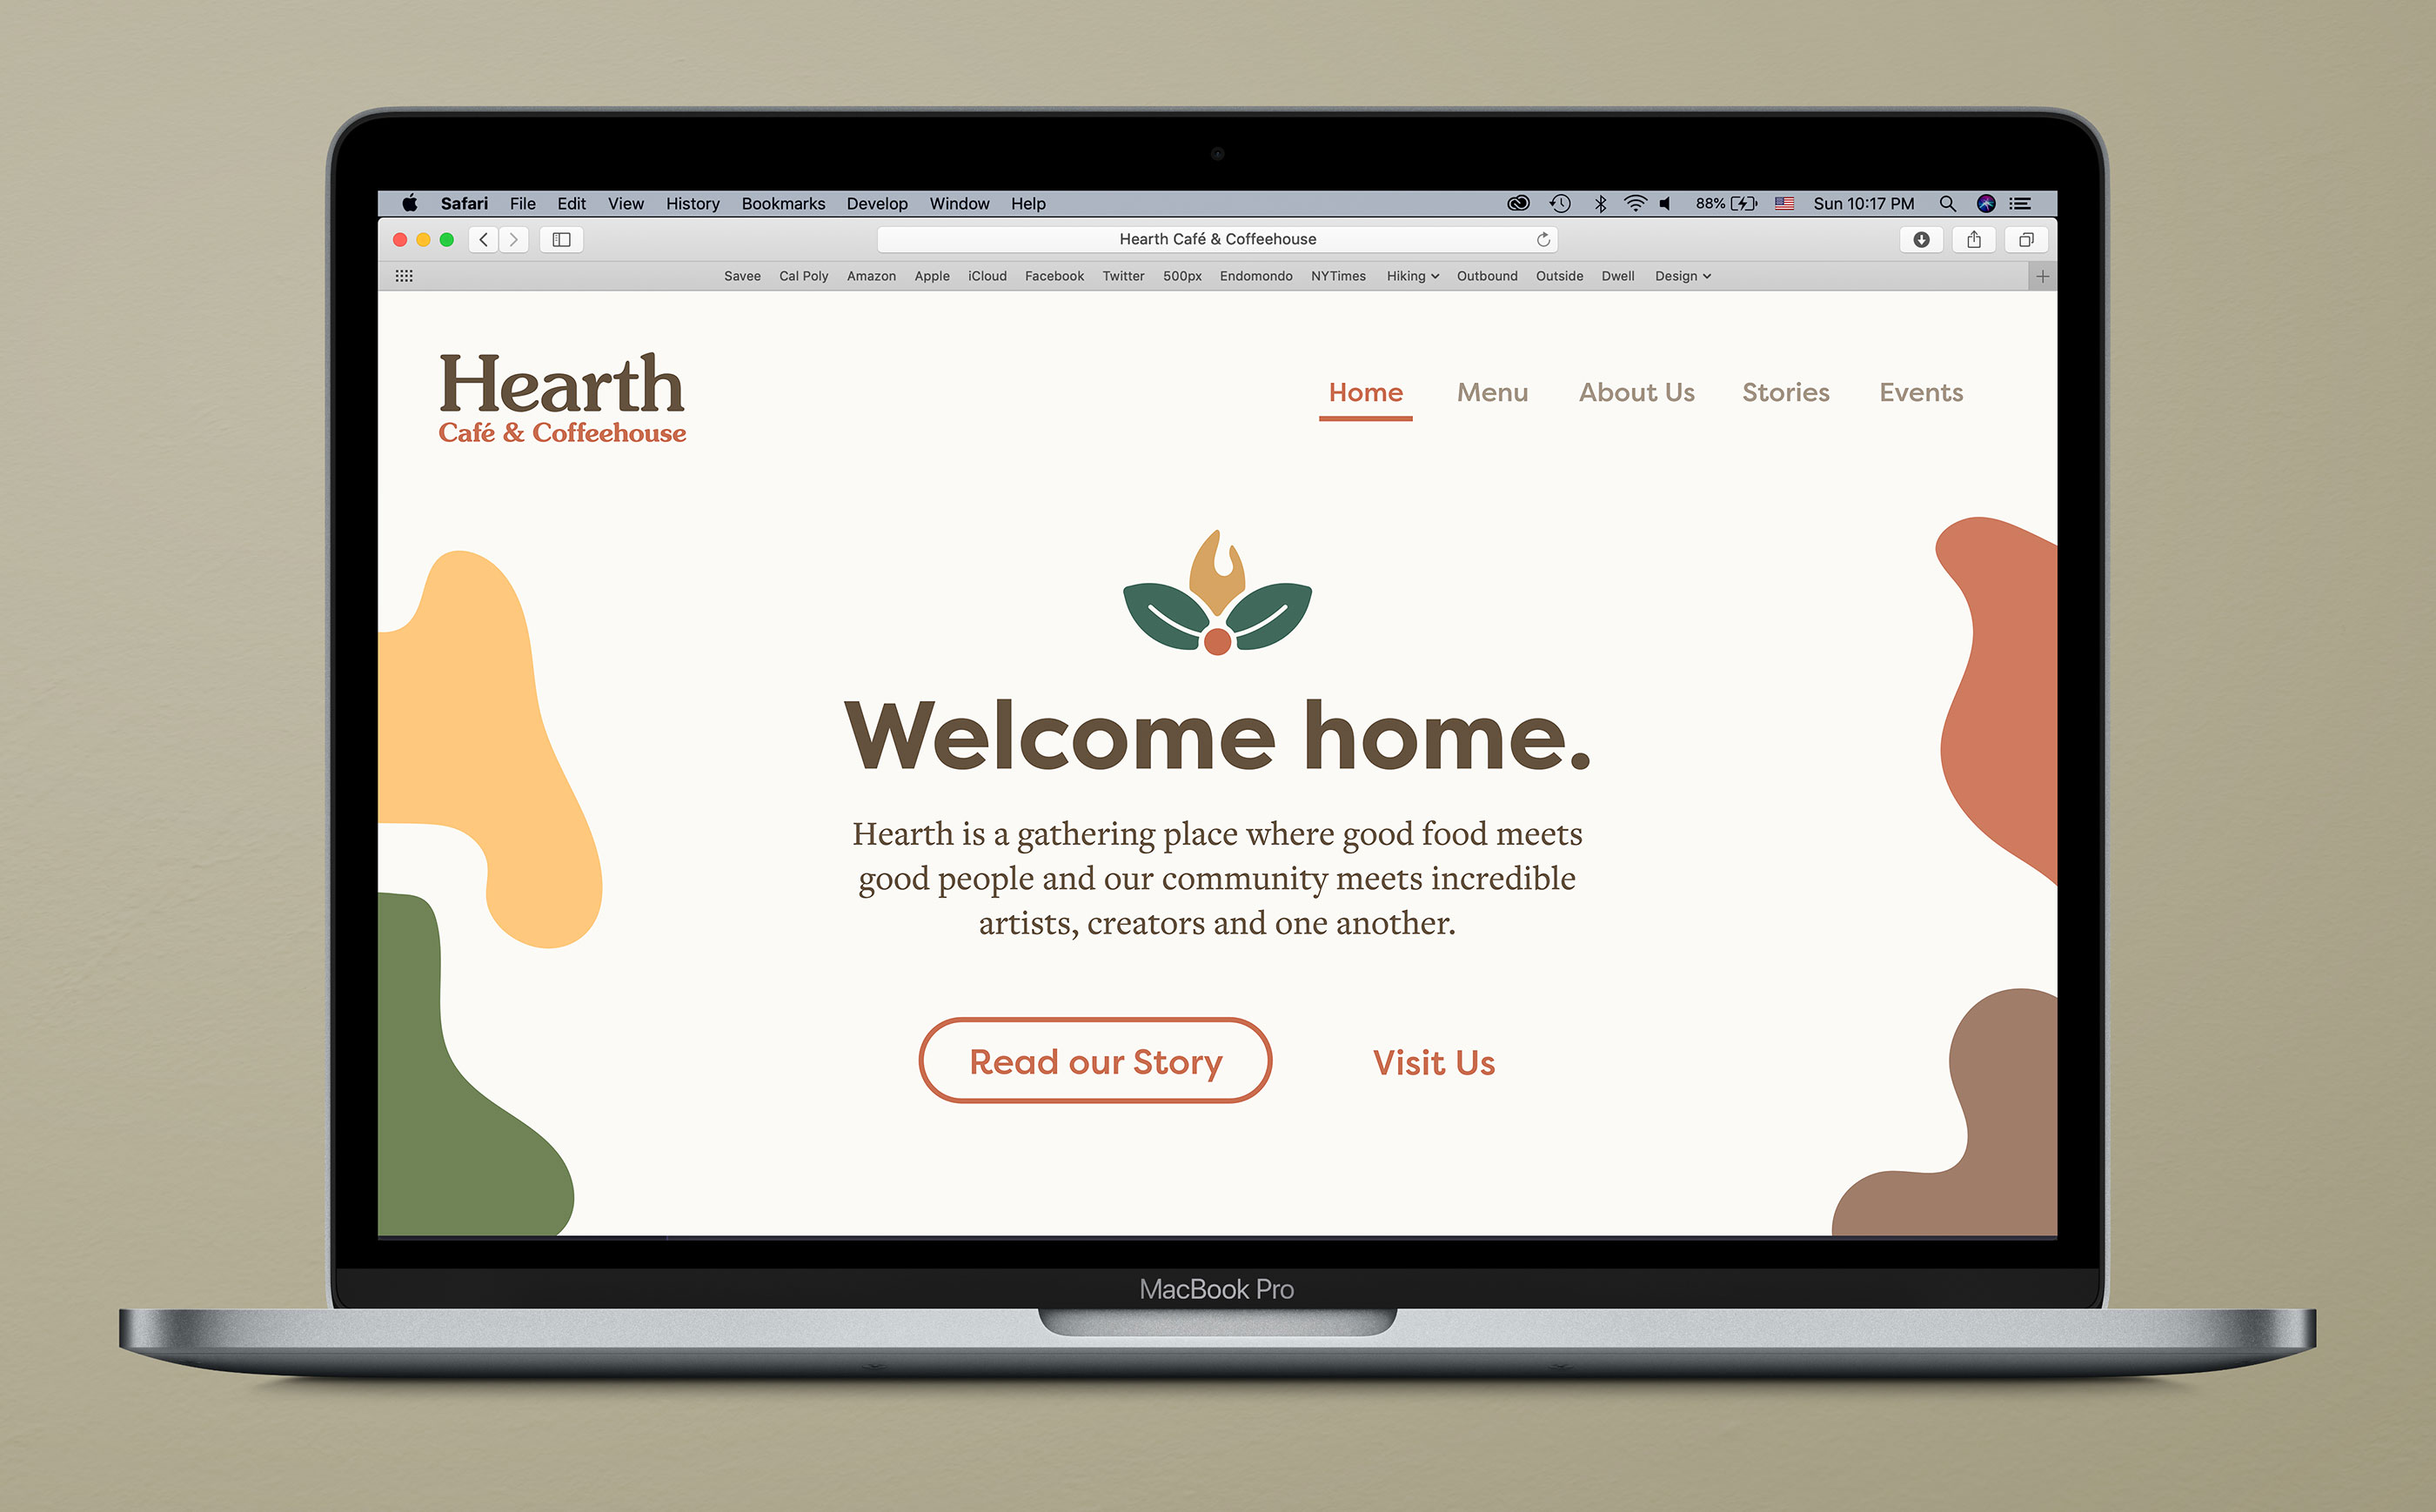 The homepage of the Hearth website, displayed in a MacBook Pro